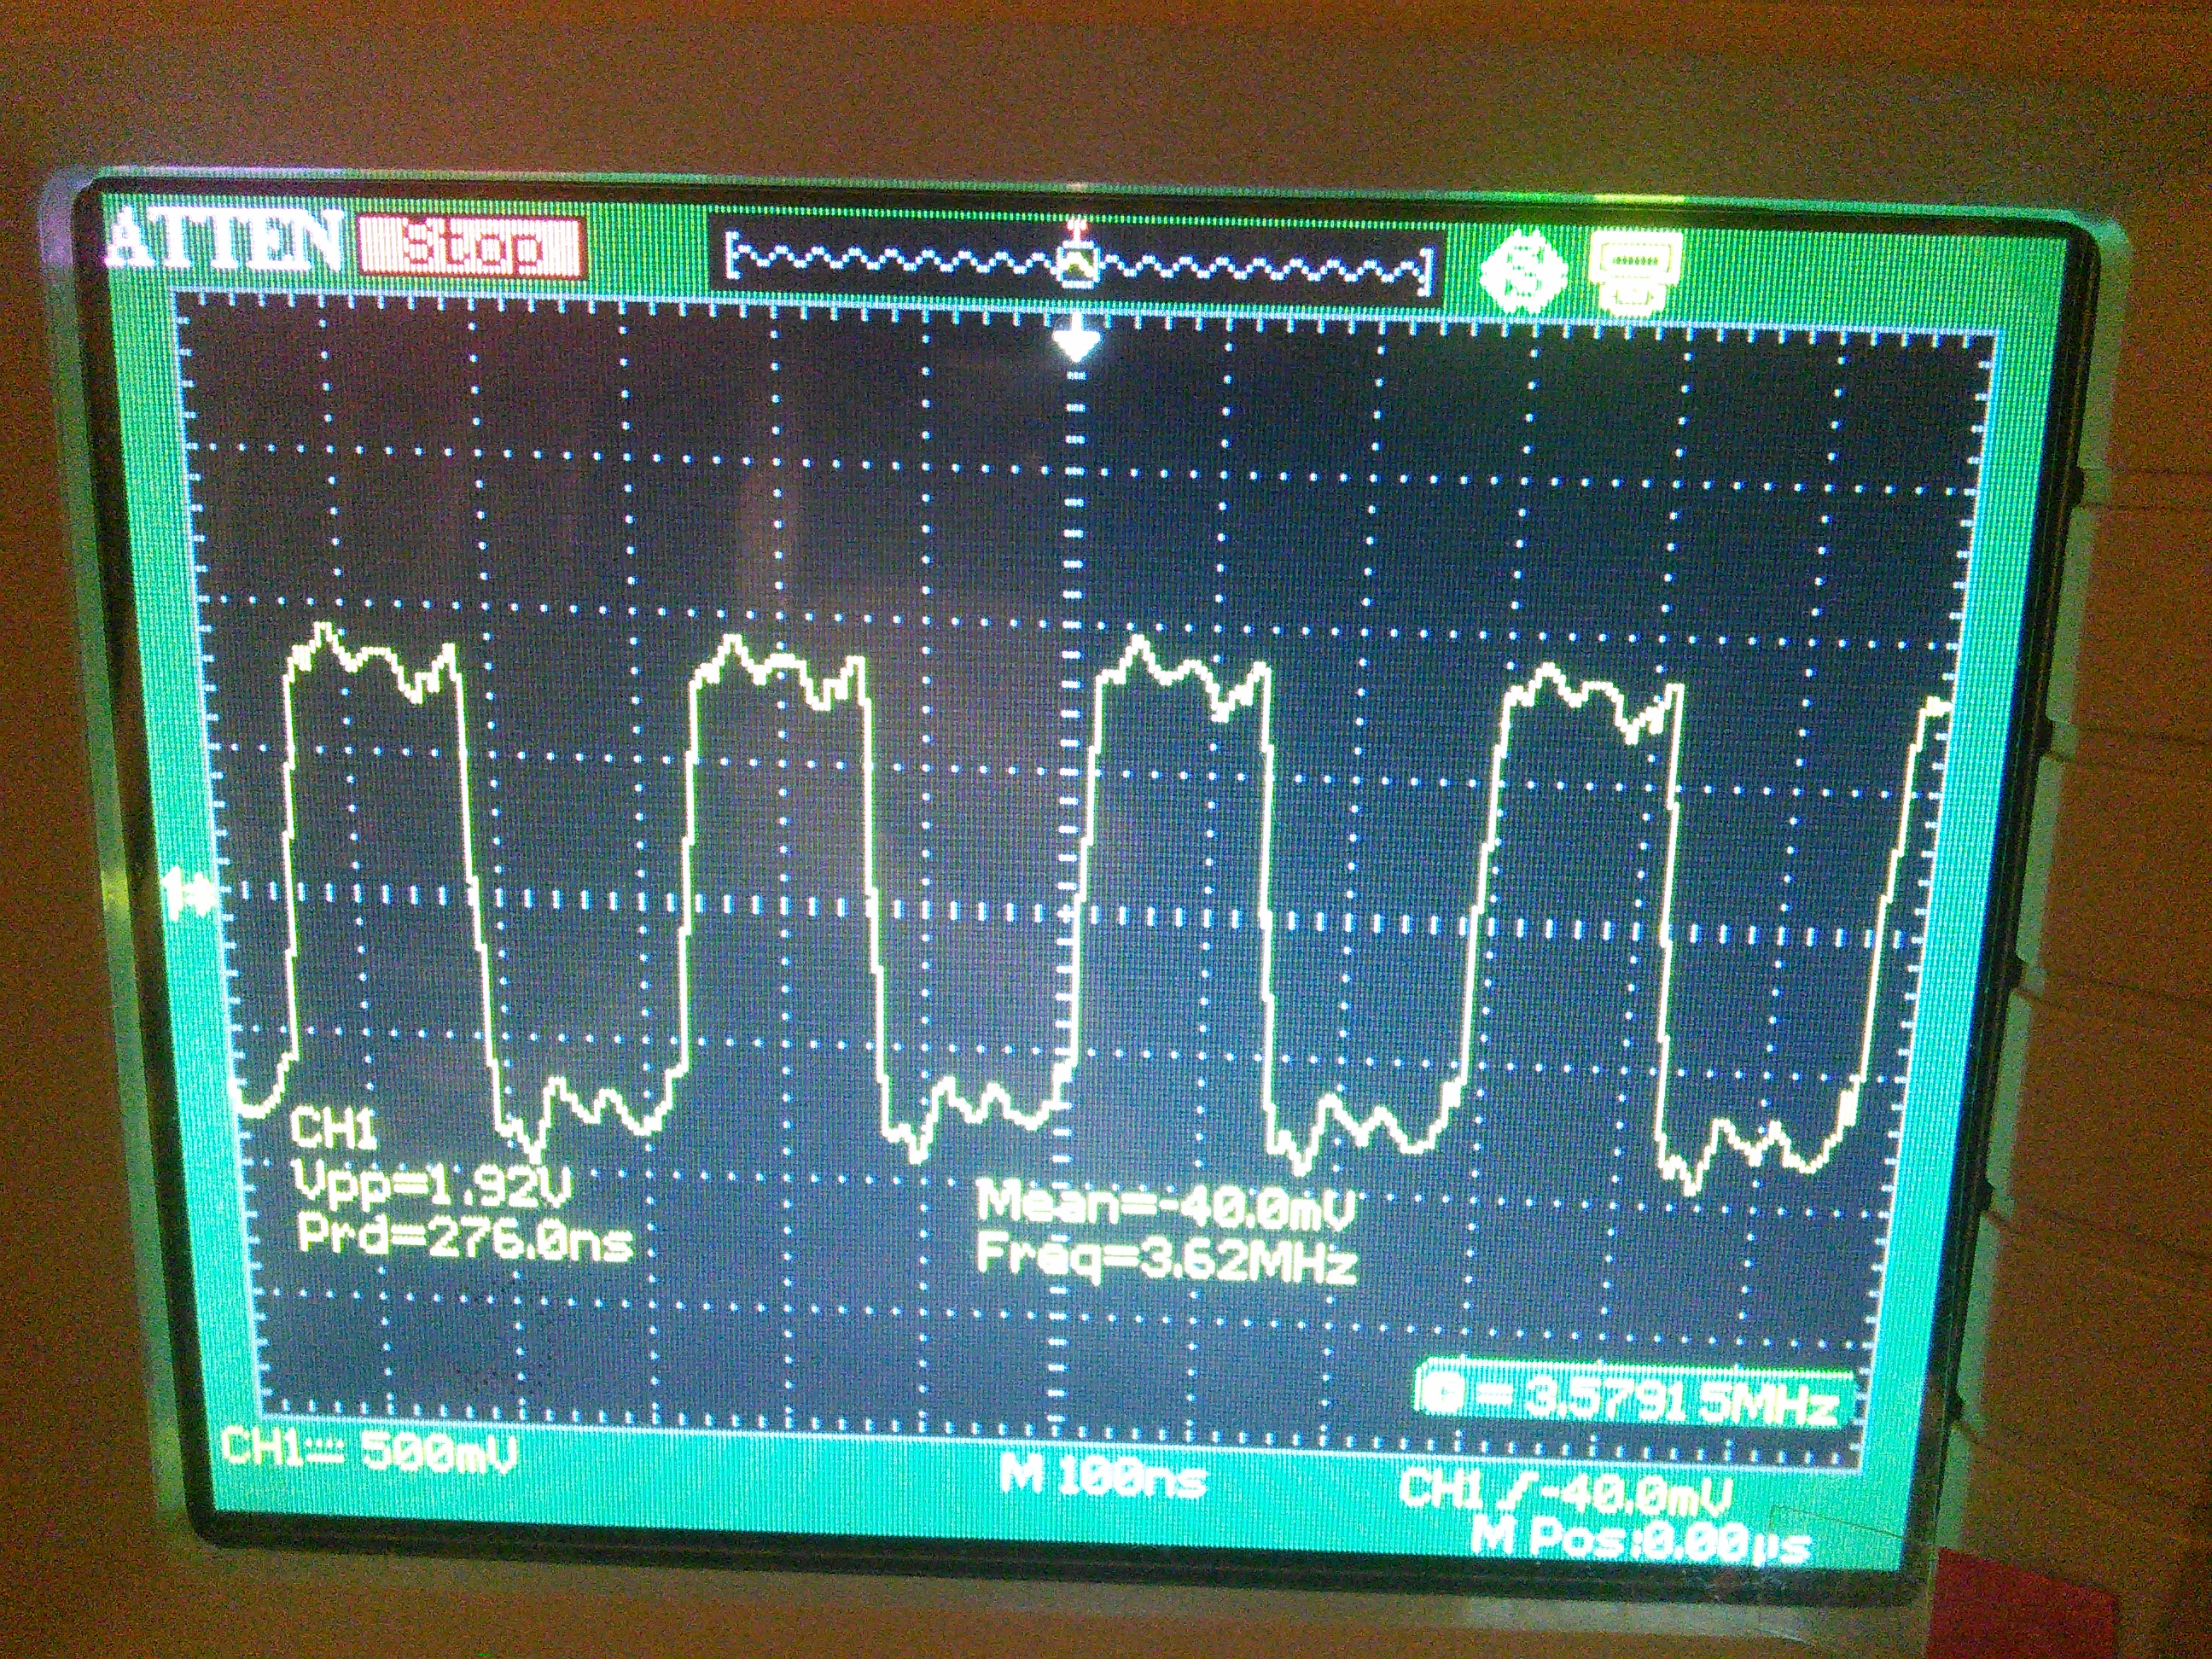 Generating A Clock Frequency Avr Freaks Cmos Ttl Inverter Oscillator Img 20150118 000429